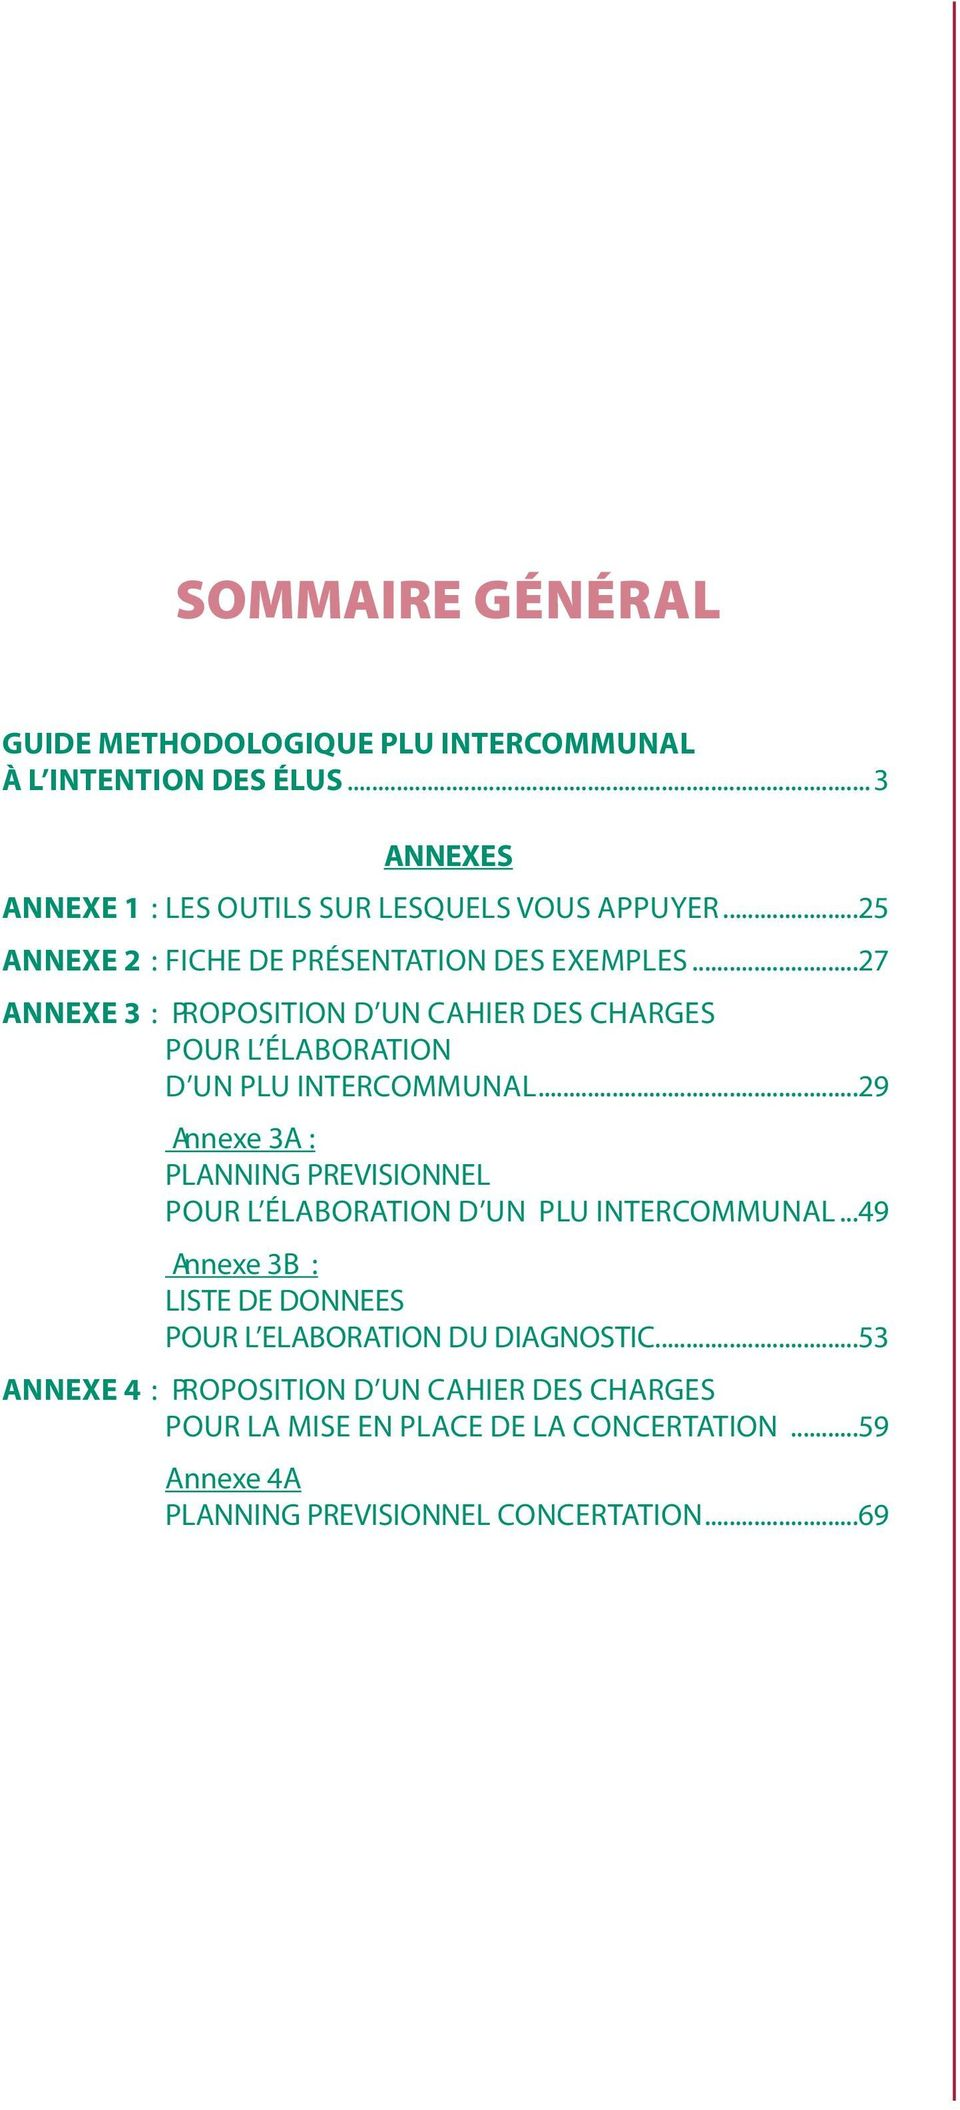 ..29....annexe 3A :. PLANNING PREVISIONNEL. pour l élaboration d un PLU intercommunal...49....annexe 3B :.LISTE DE DONNEES.